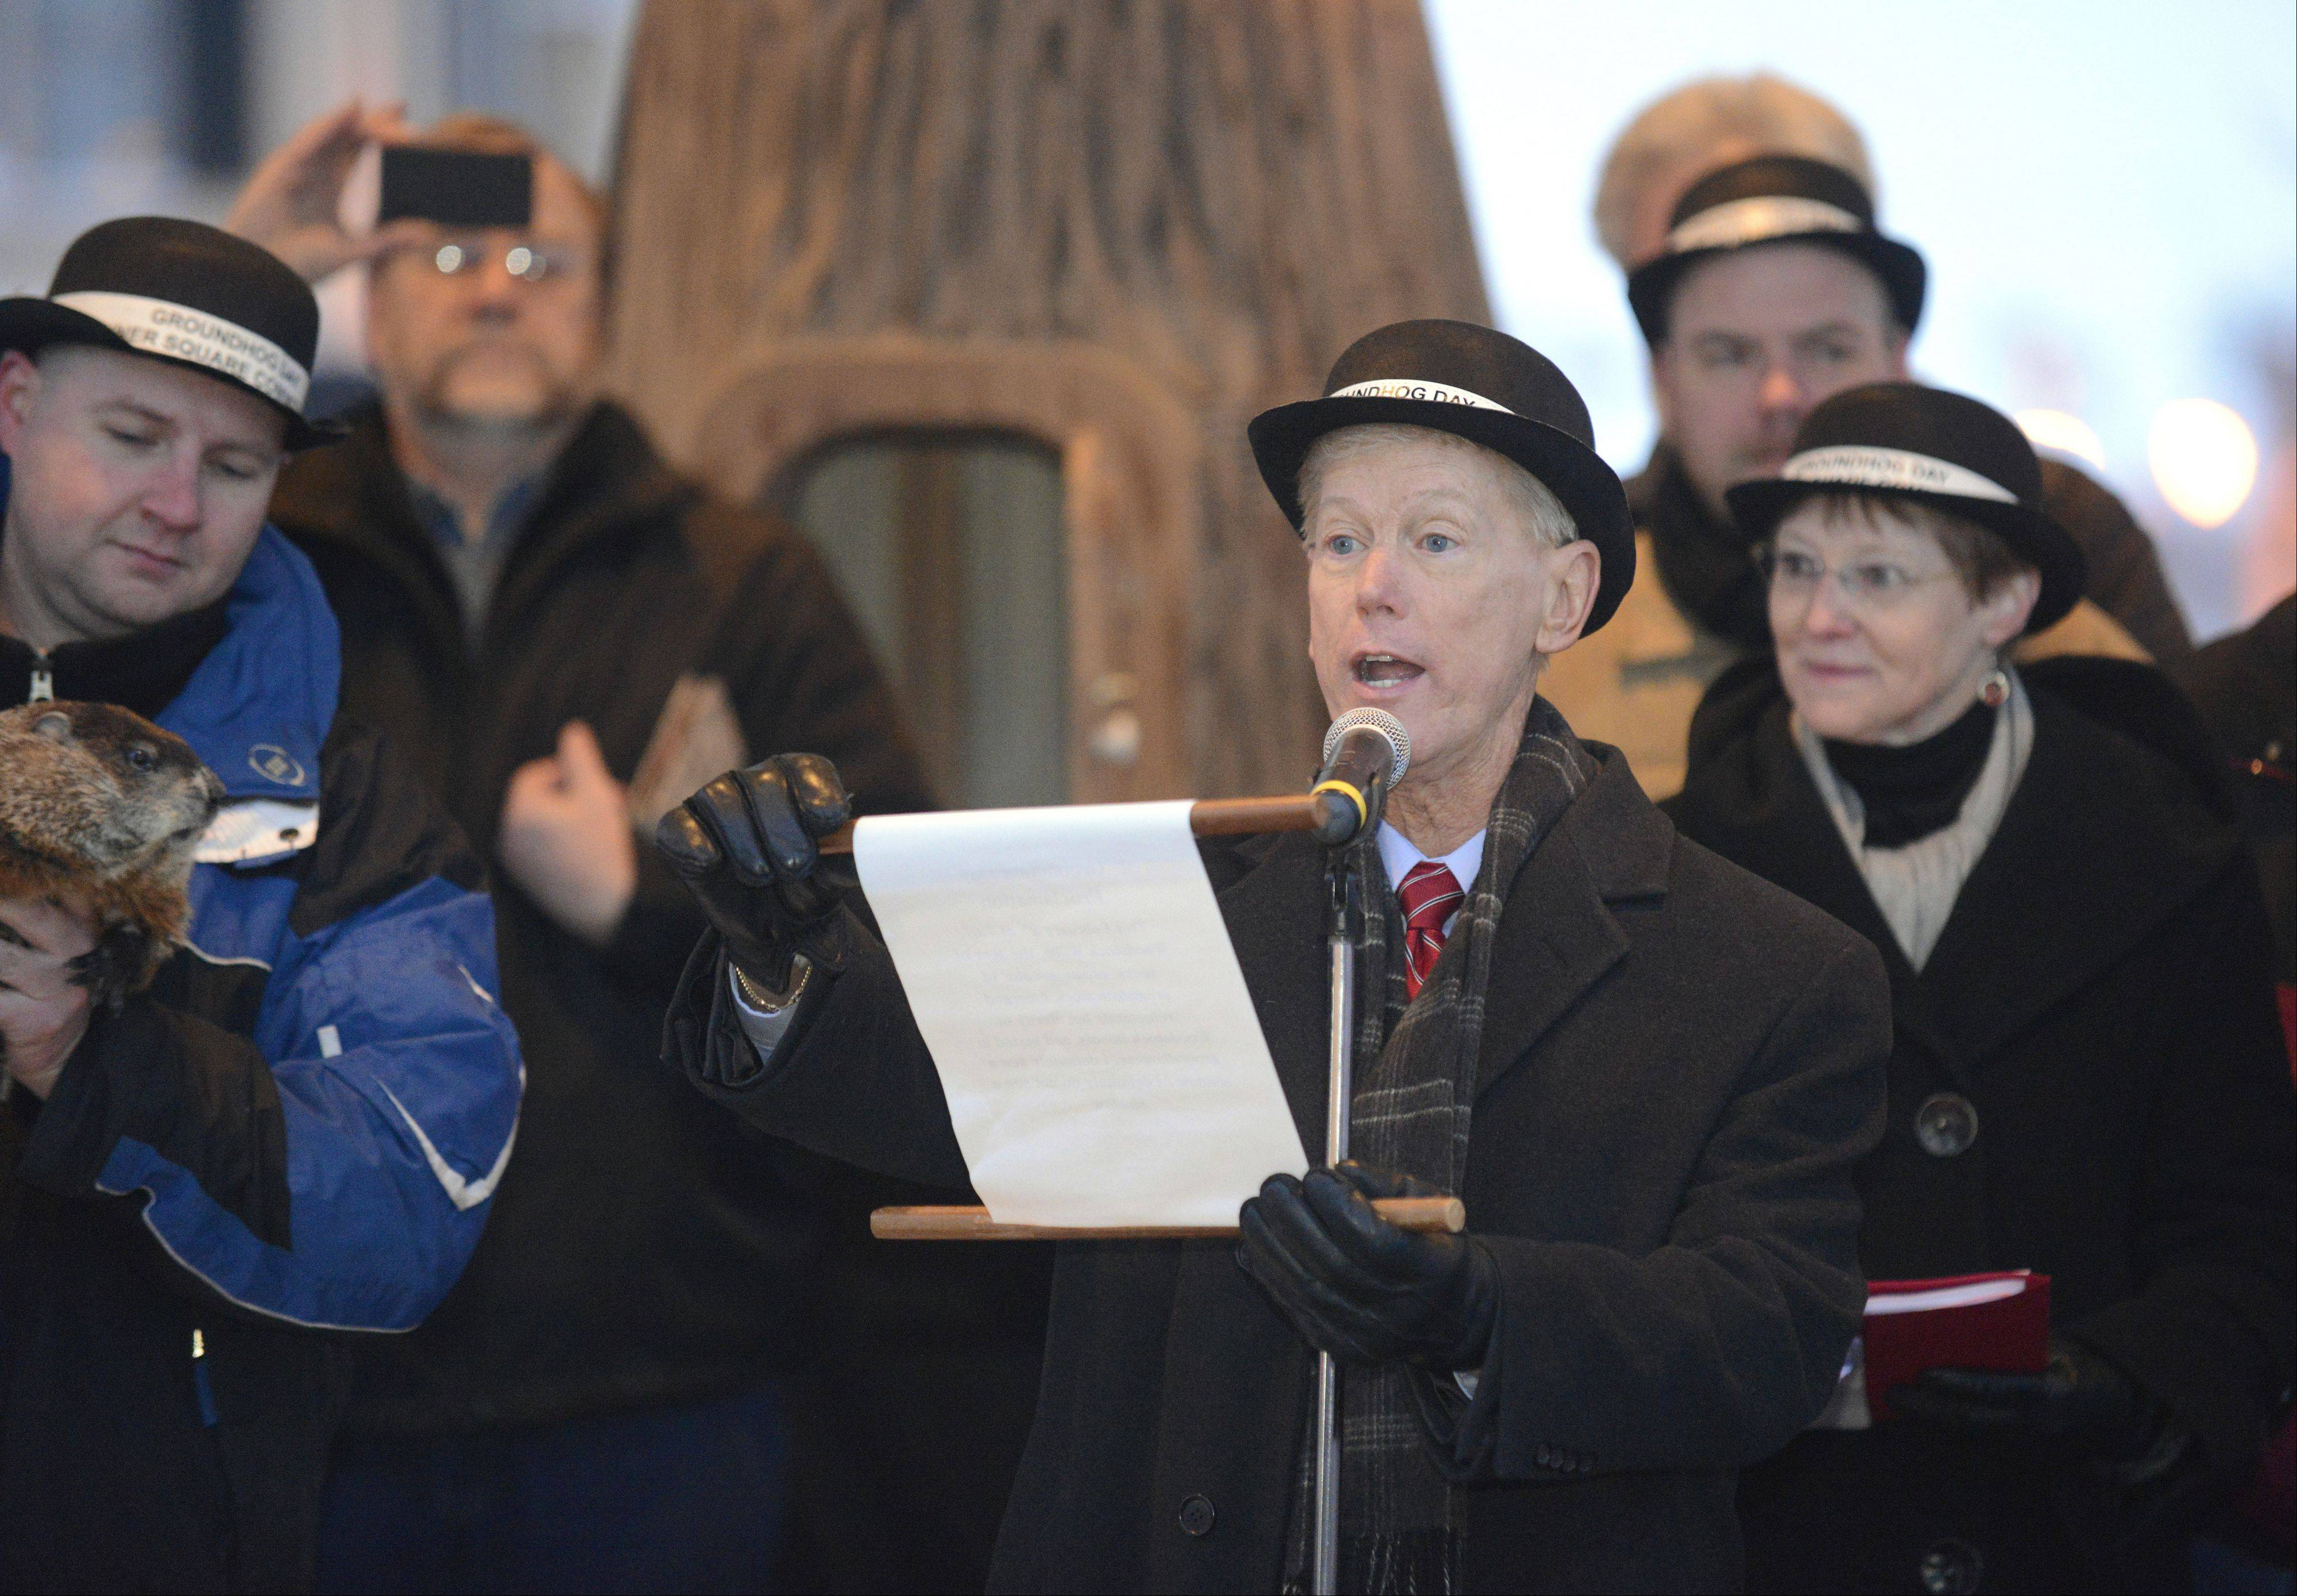 Woodstock Mayor Brian Sager reads the Groundhog Day proclamation in Woodstock Square on Saturday. Woodstock Willie did not see his shadow, so an early spring is predicted, despite the snowfall overnight.